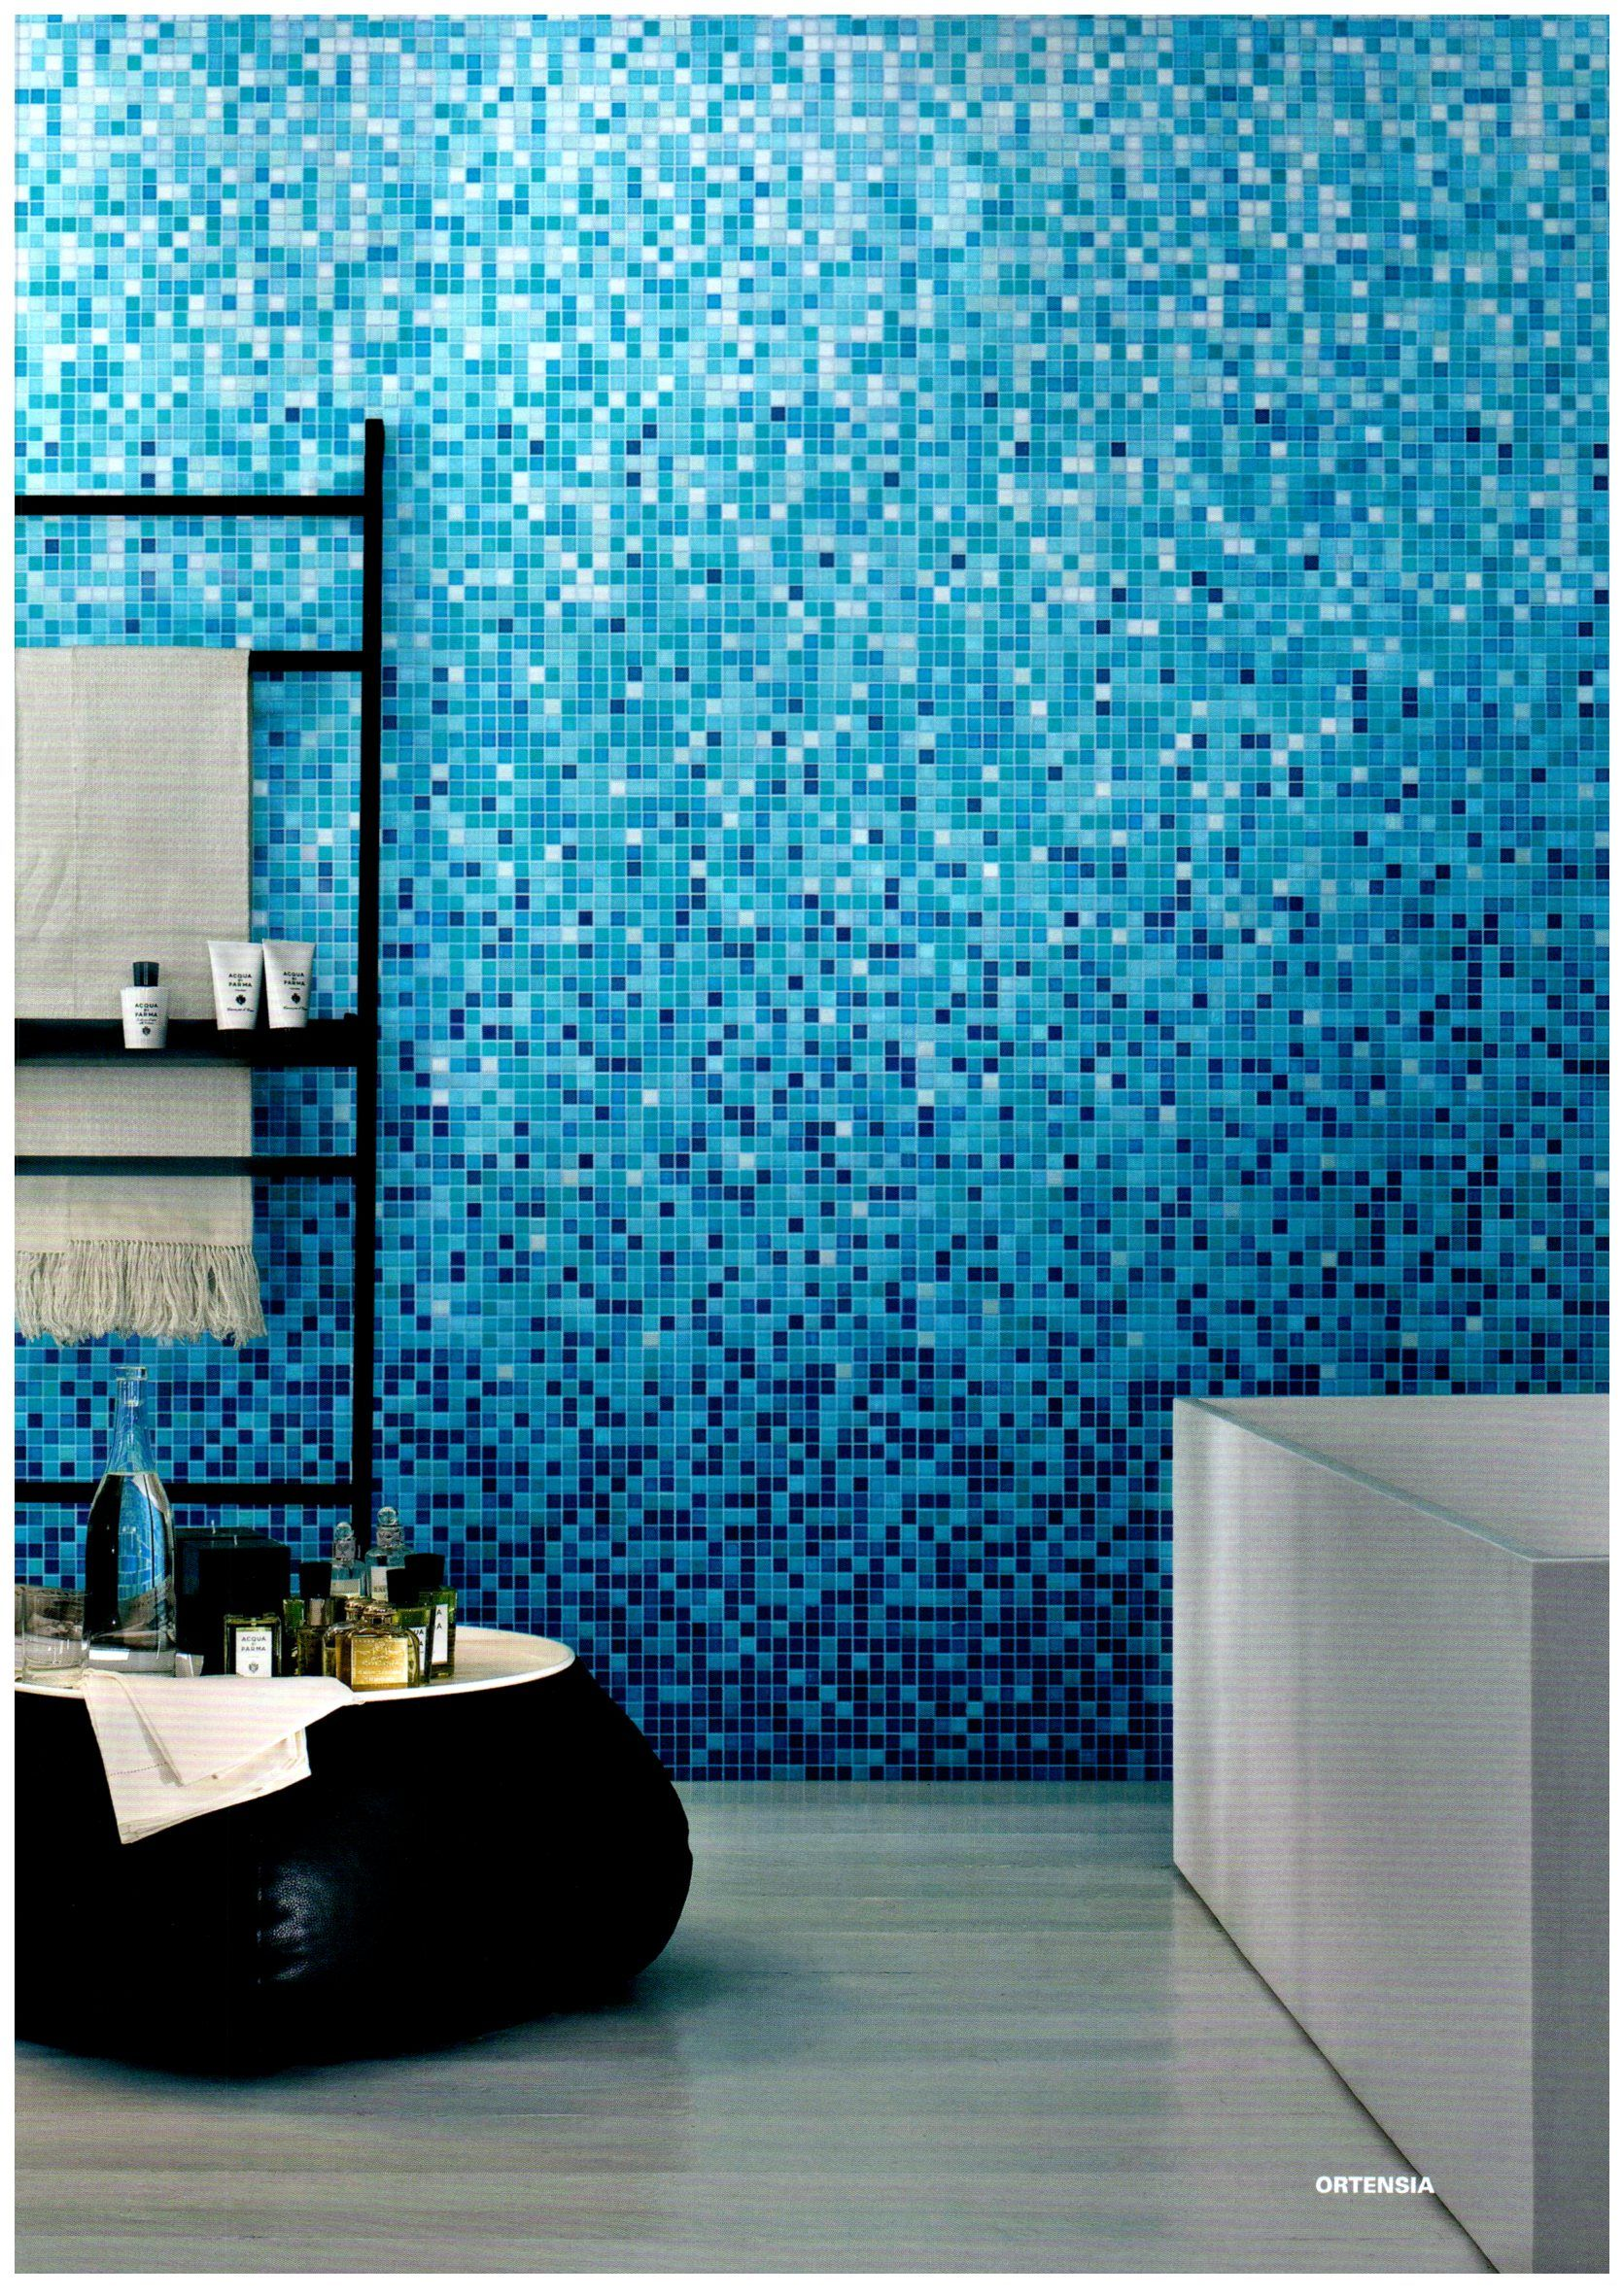 bisazza ortensia | Mosaic Tile | Pinterest | Mosaics and Interiors